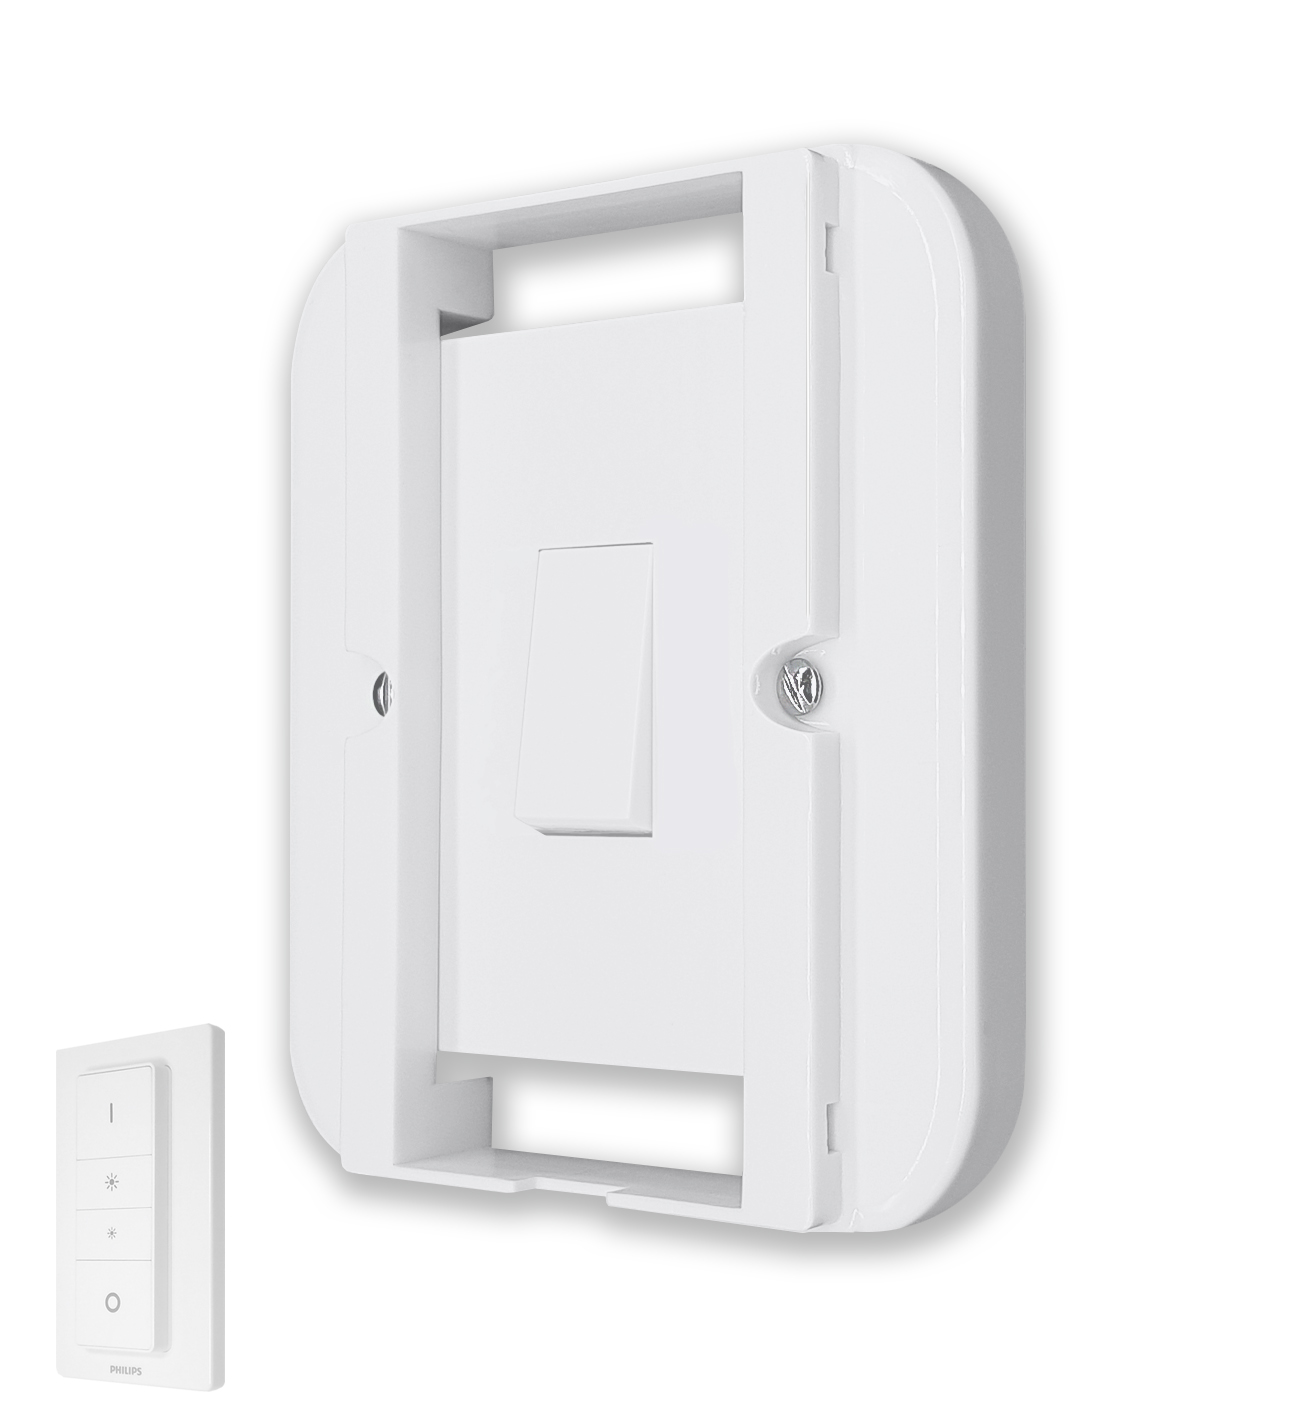 Philips Dimmer Grade A Light Switch Adapter For Philips Hue Wireless Dimmer Sm200